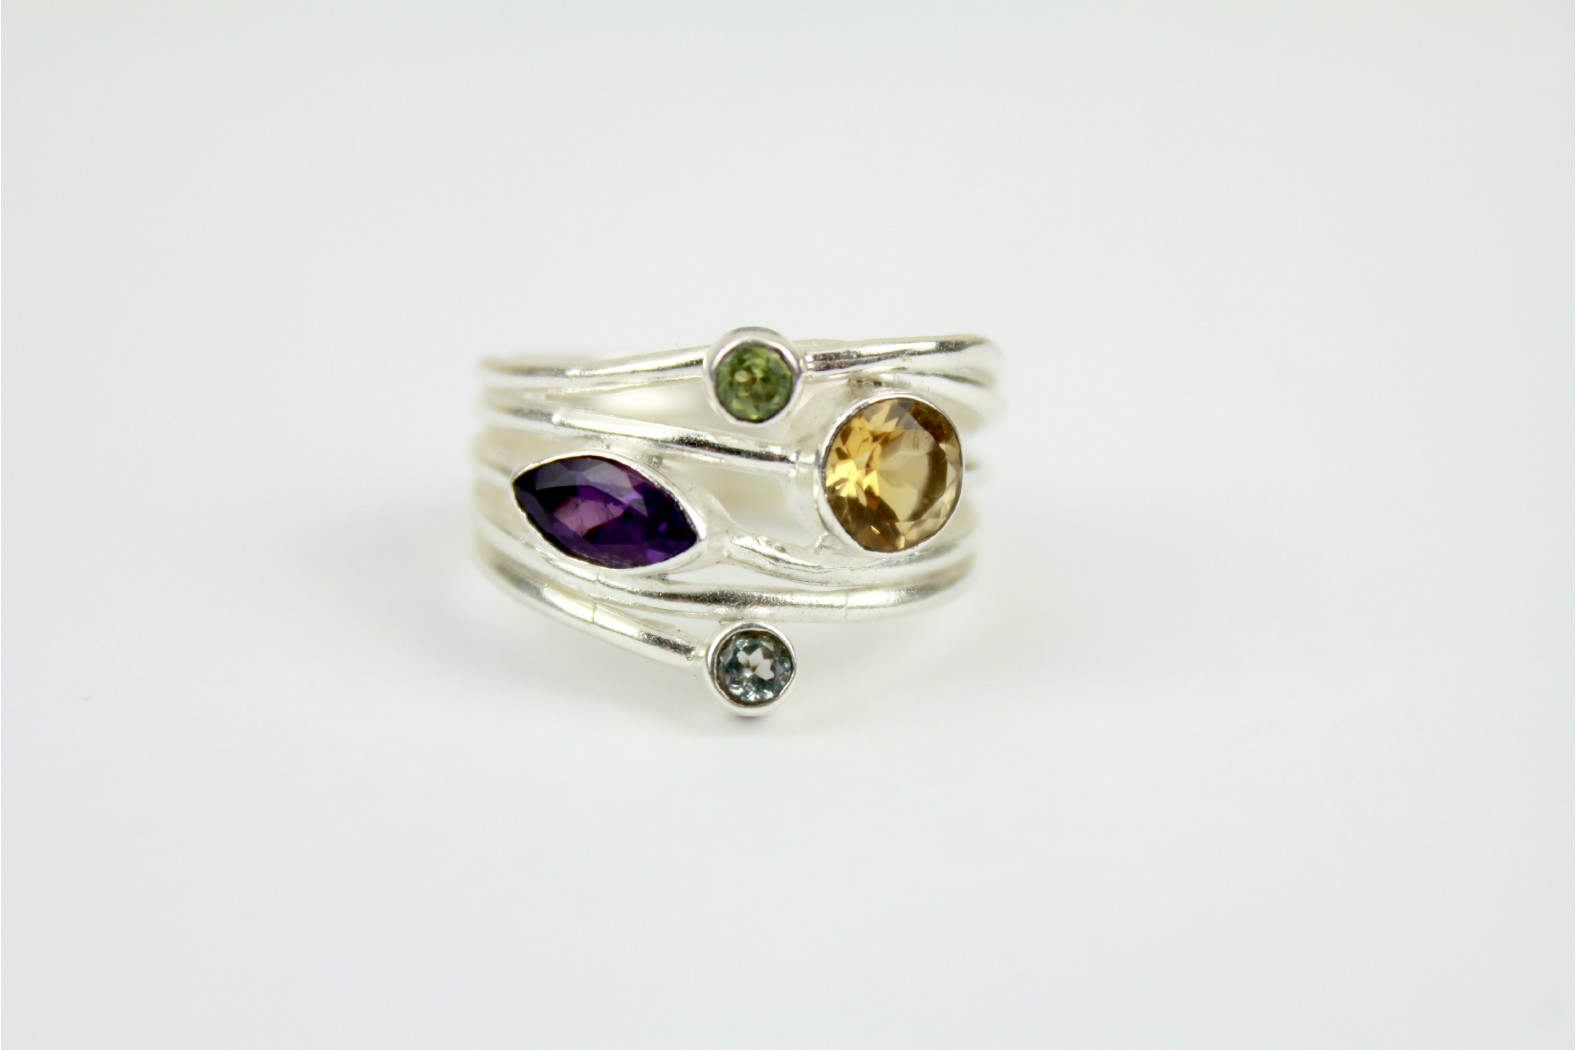 Stunning Quadruple multi colour stone Polished Silver size 9 or R. TEMPORARILY OUT OF STOCK